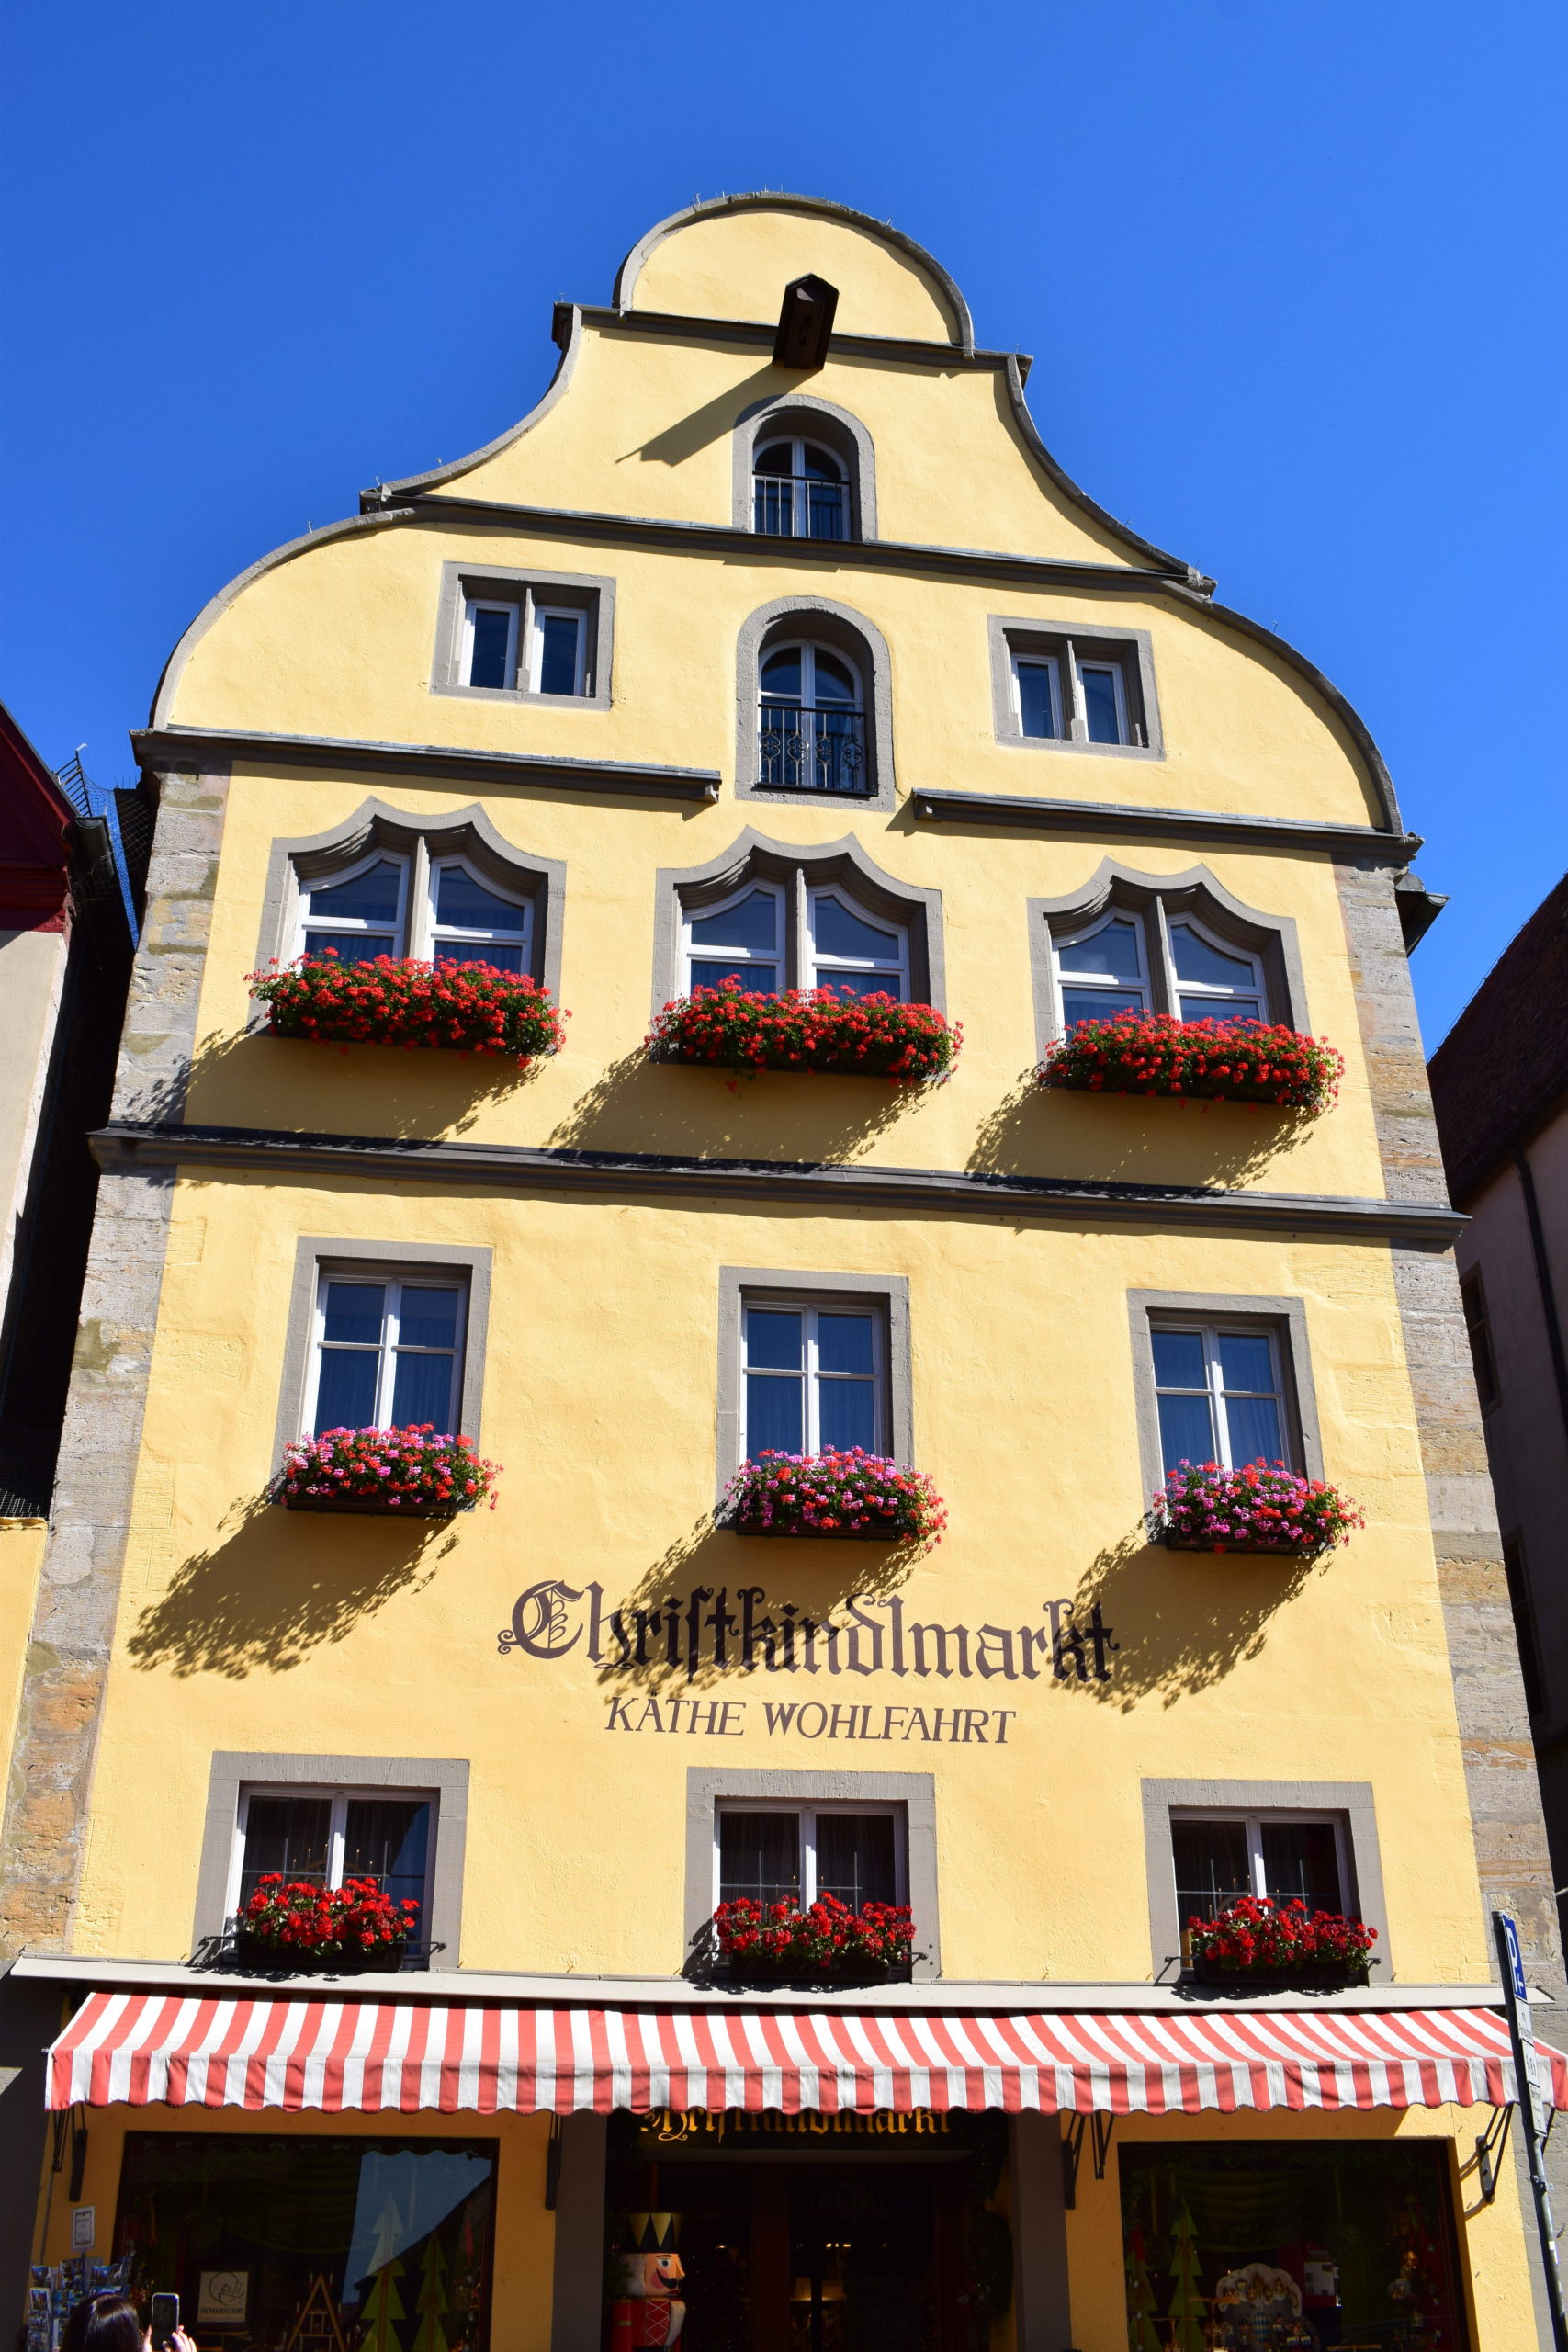 Travel Guide Rothenburg ob der Tauber – visit the most beautiful sights in only 3 hours